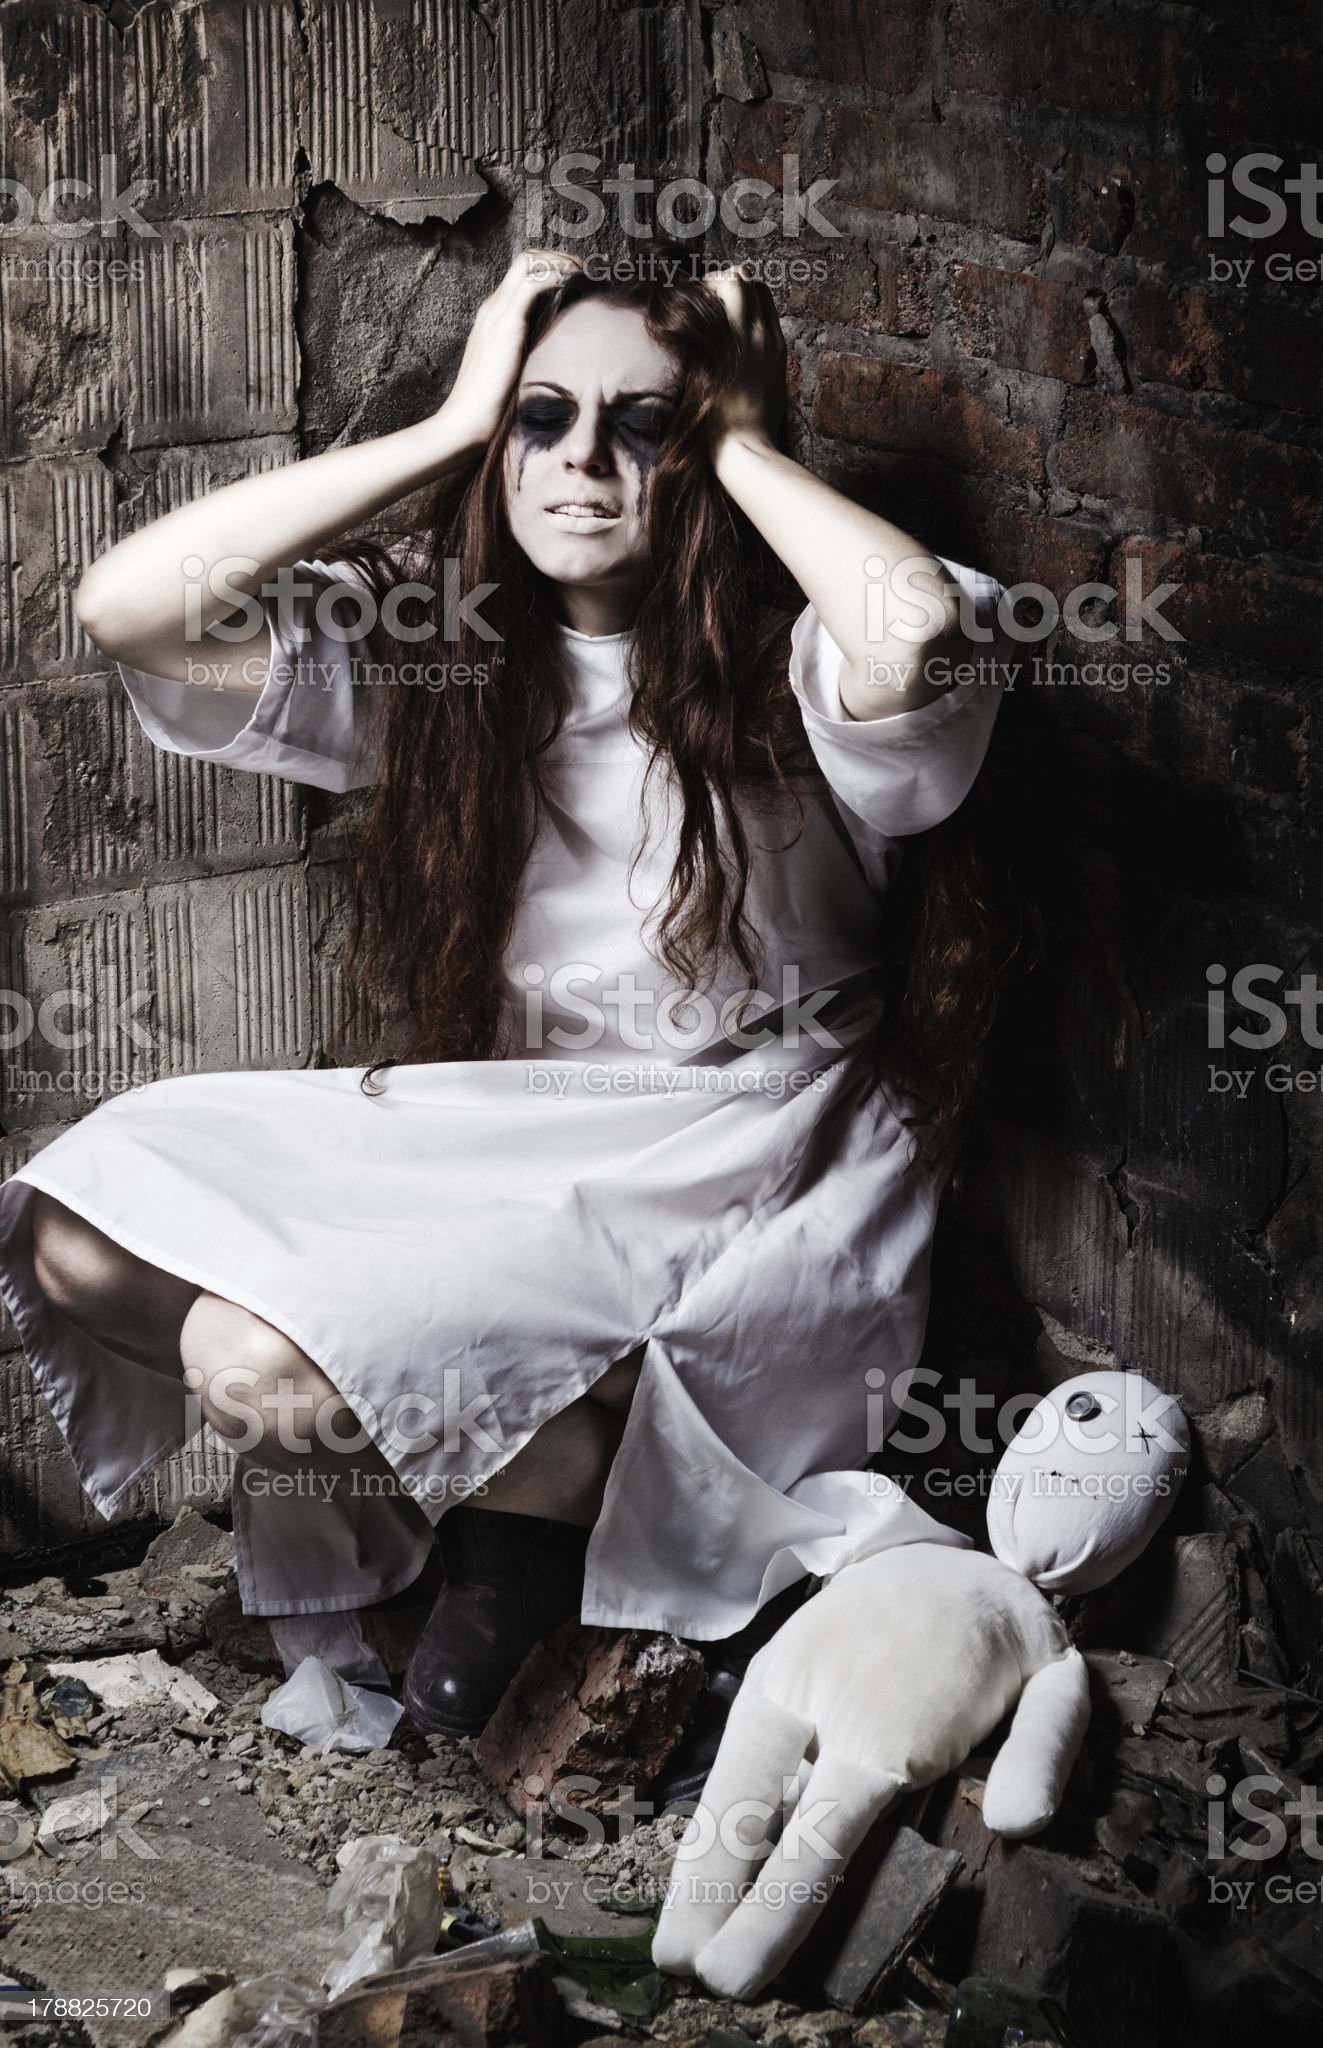 Horror style shot: strange crazy girl and her moppet doll royalty-free stock photo